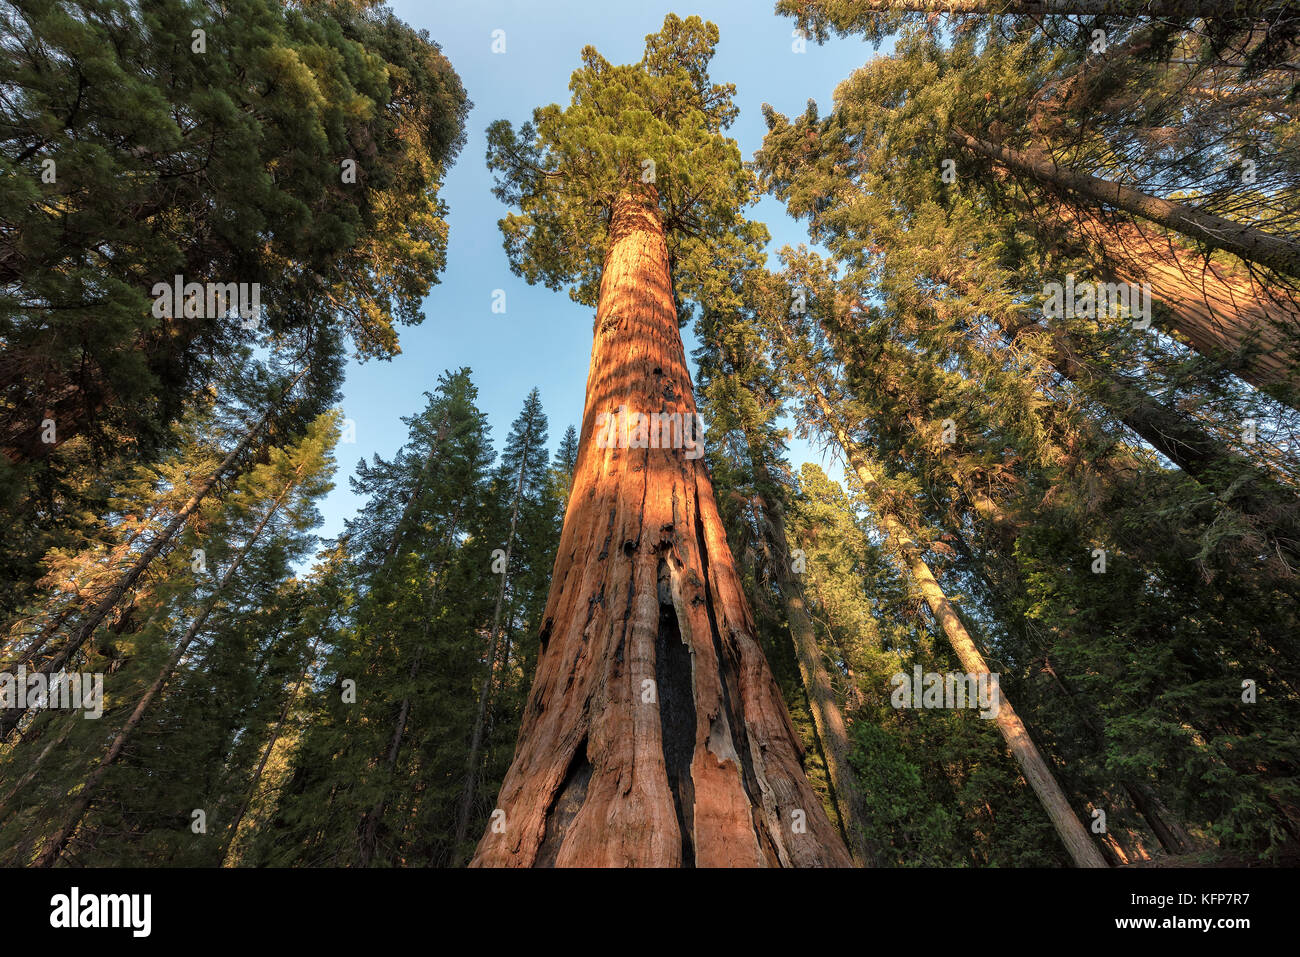 Redwood Trees in Sequoia National Park, California. - Stock Image